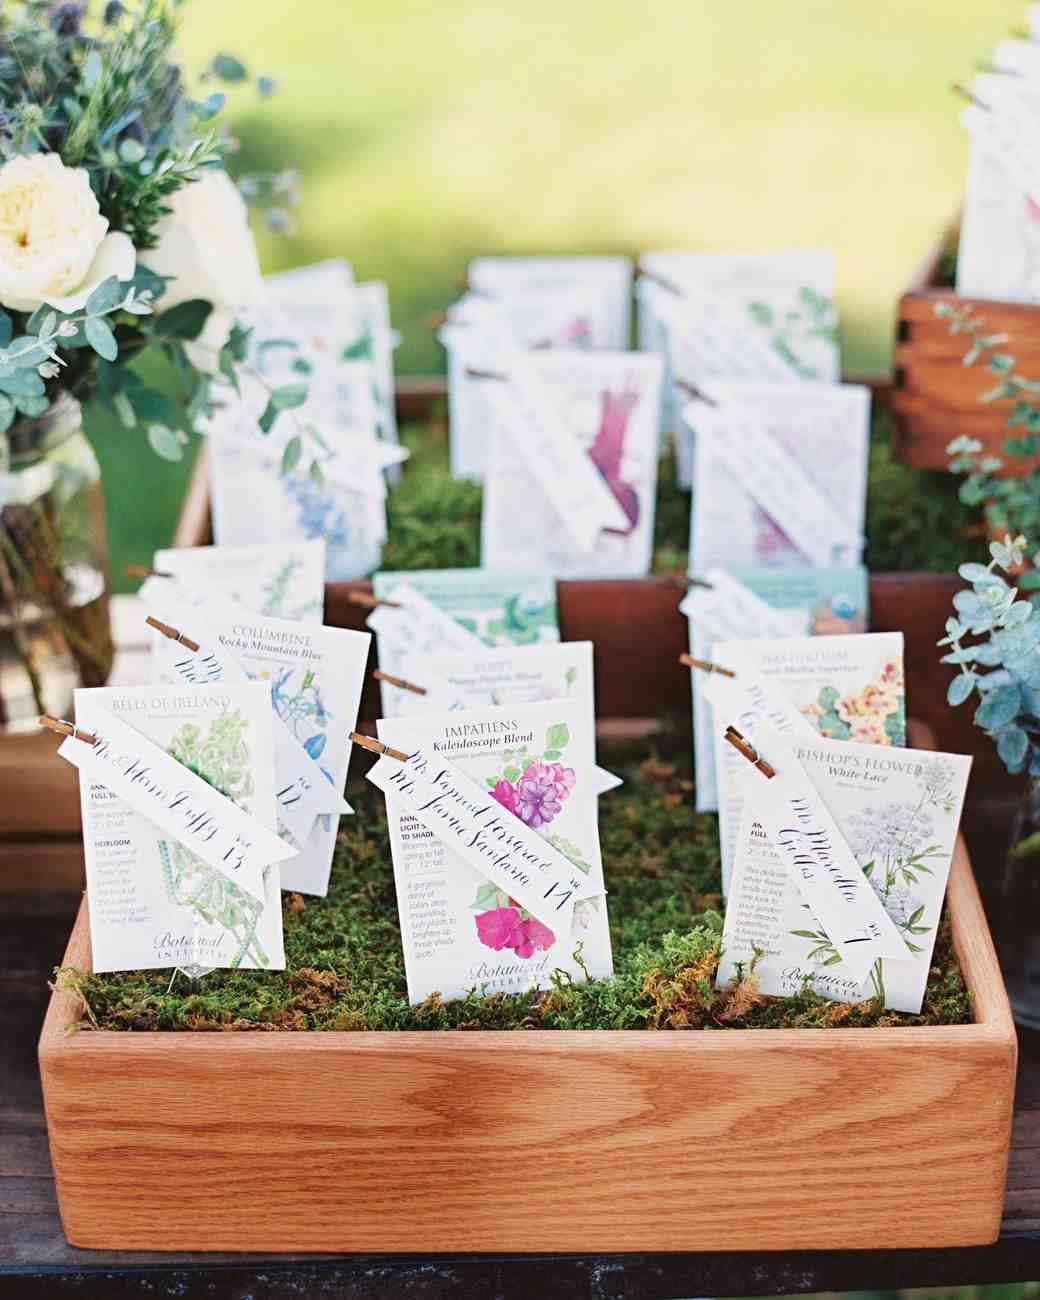 josh-matt-real-wedding-plant-seeds-escort-cards-favors.jpg